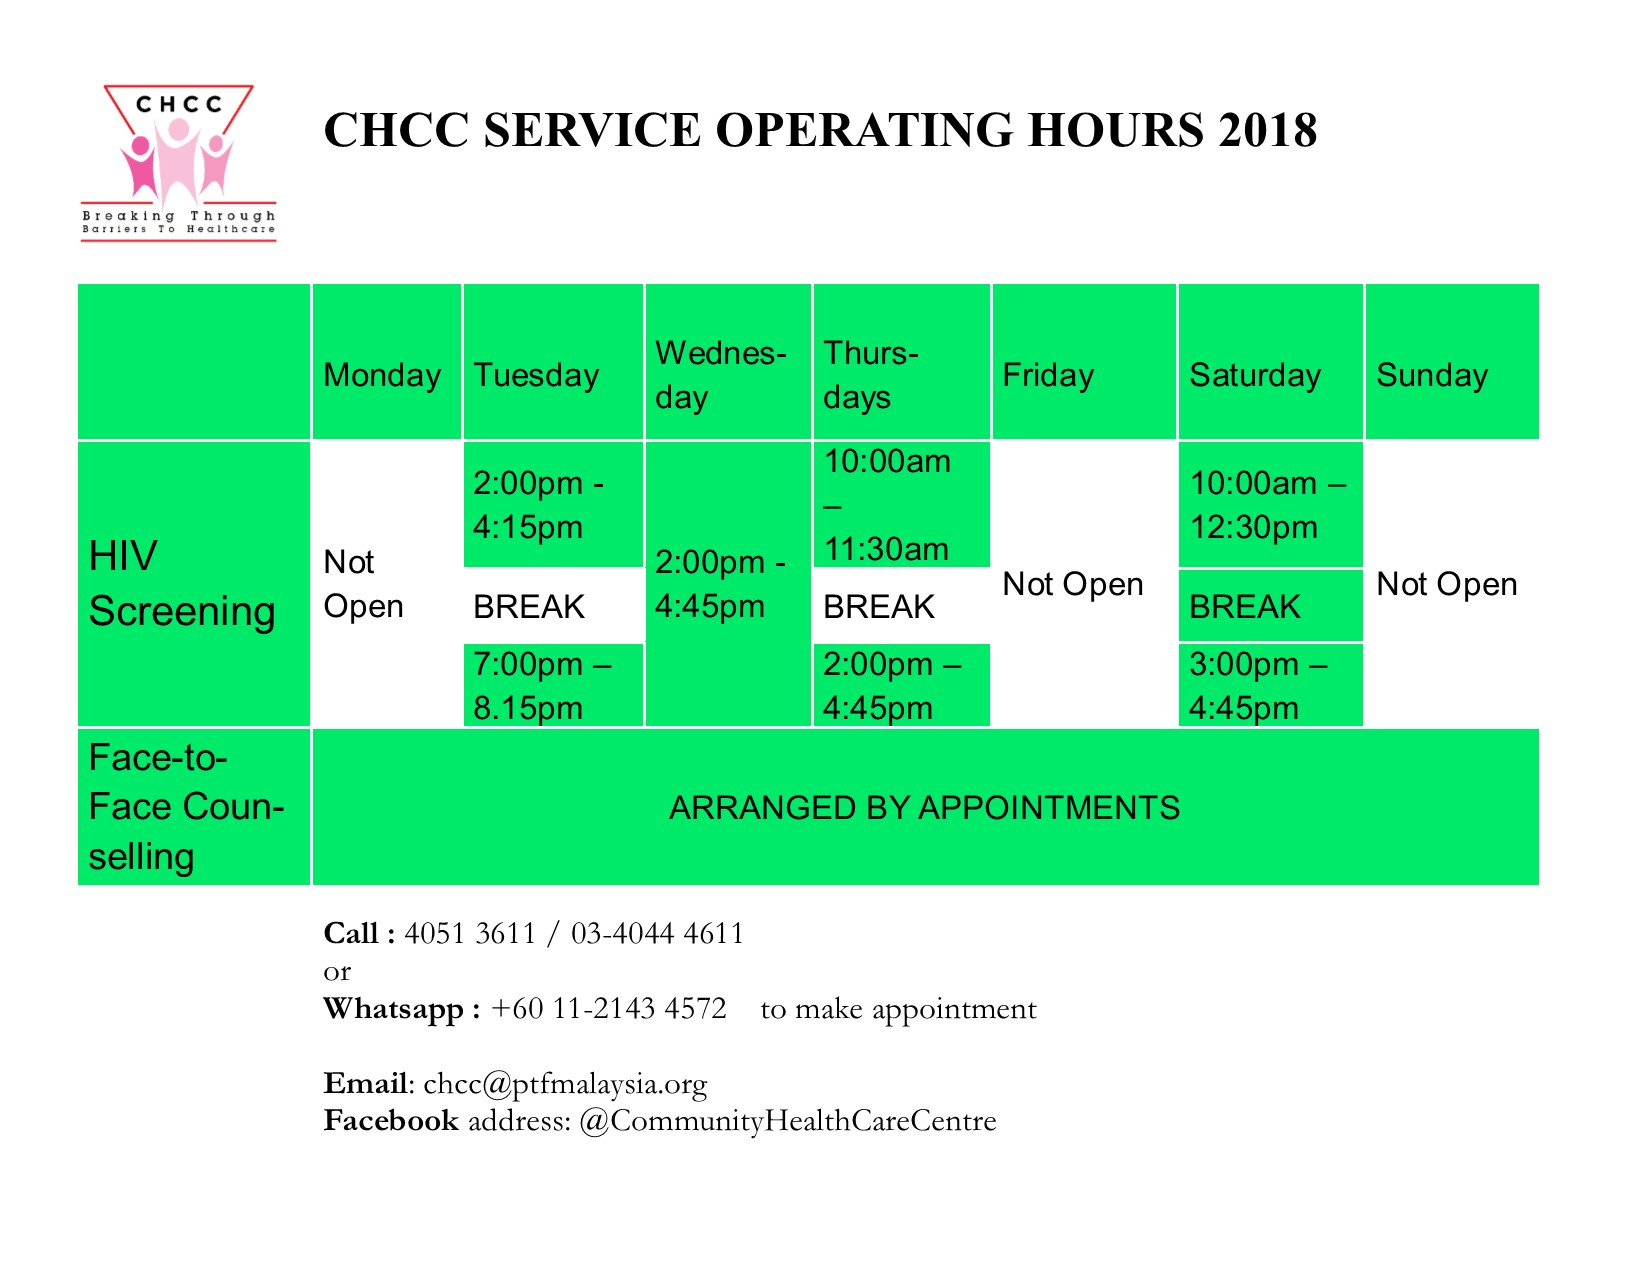 CHCC SERVICE OPERATION HOURS 2018 LNDSCP 1